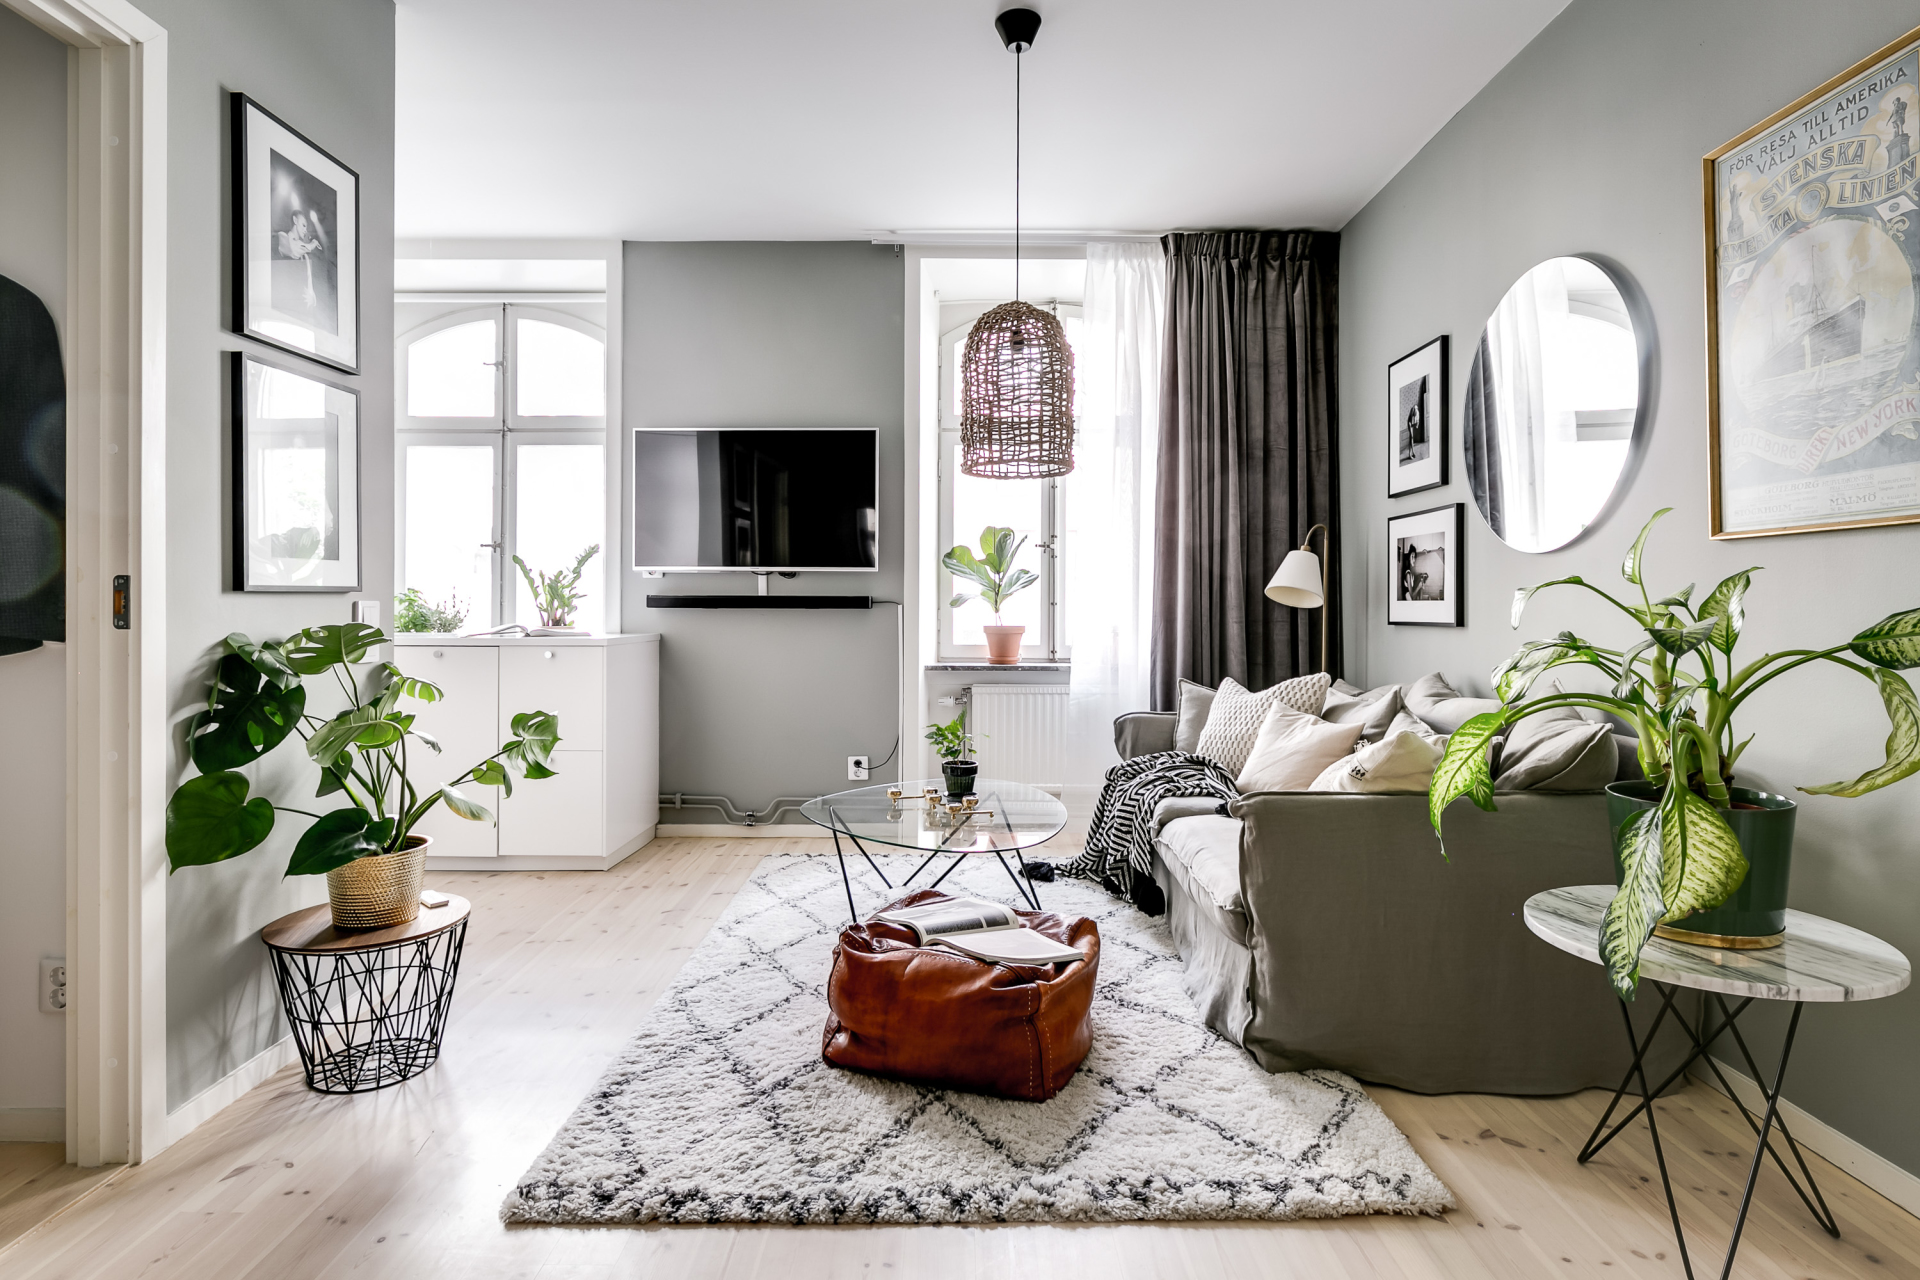 The Nordroom - A Small Grey And White Scandinavian Apartment